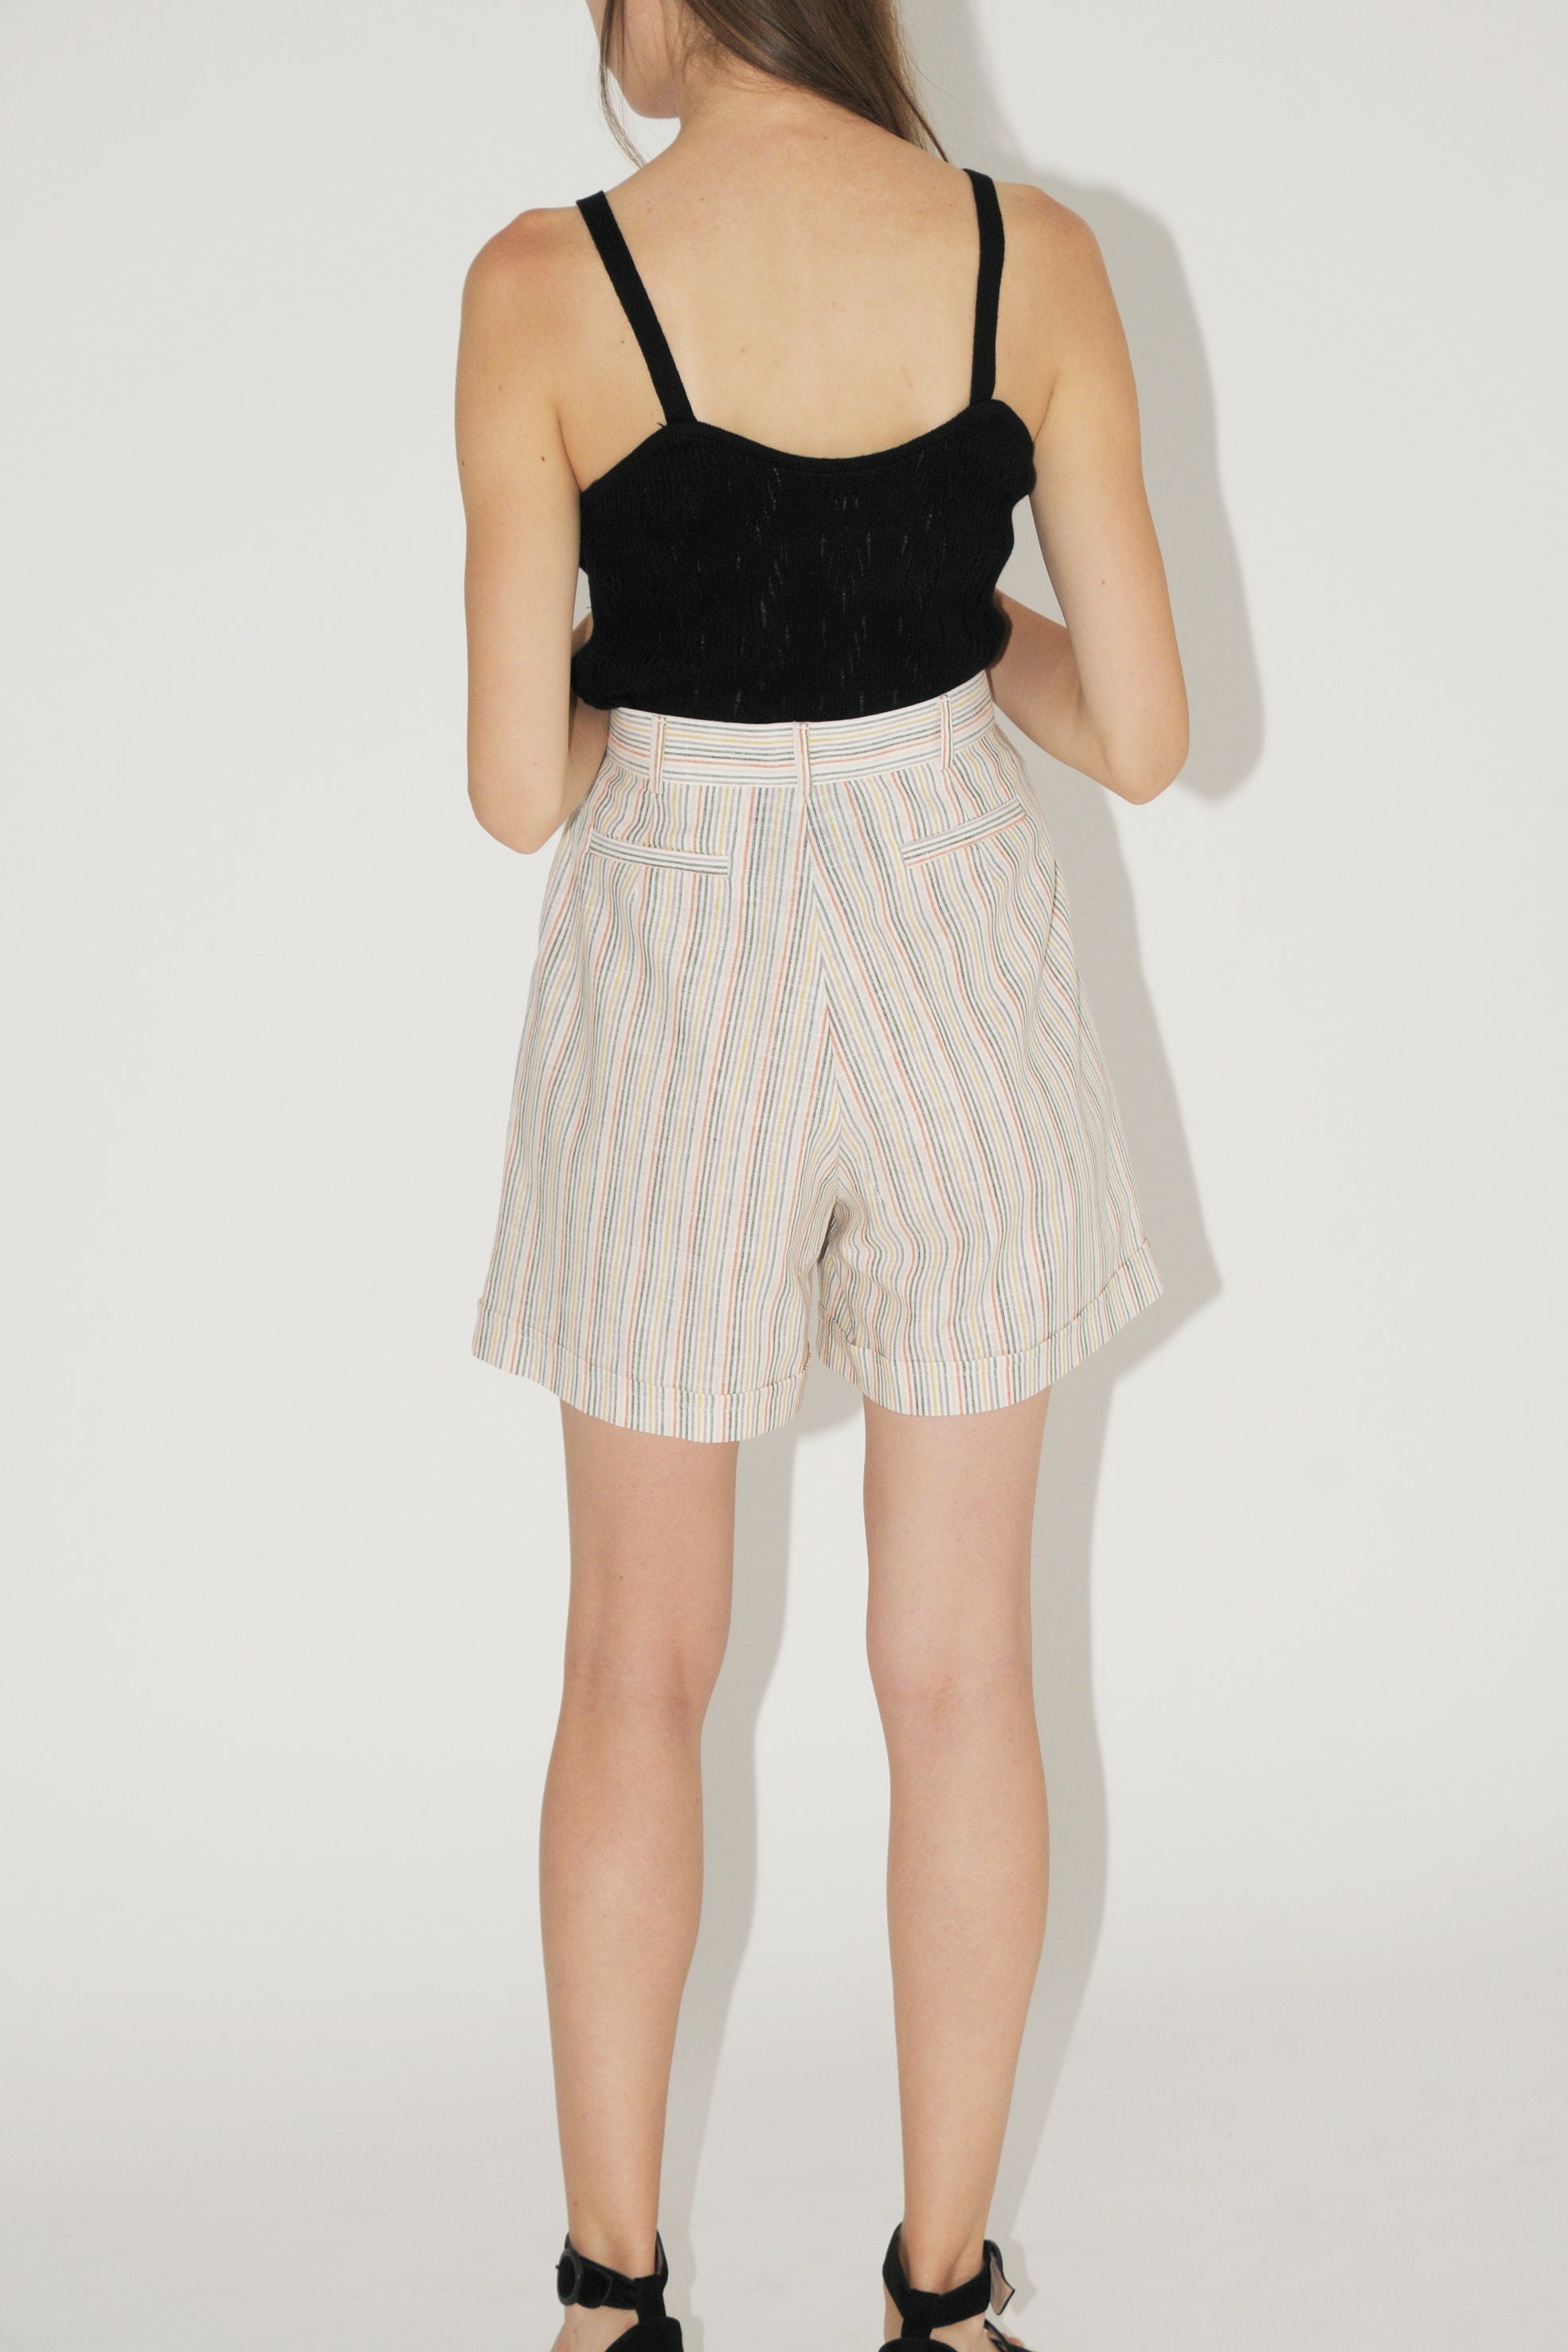 Diarte Rudo Stripes Shorts